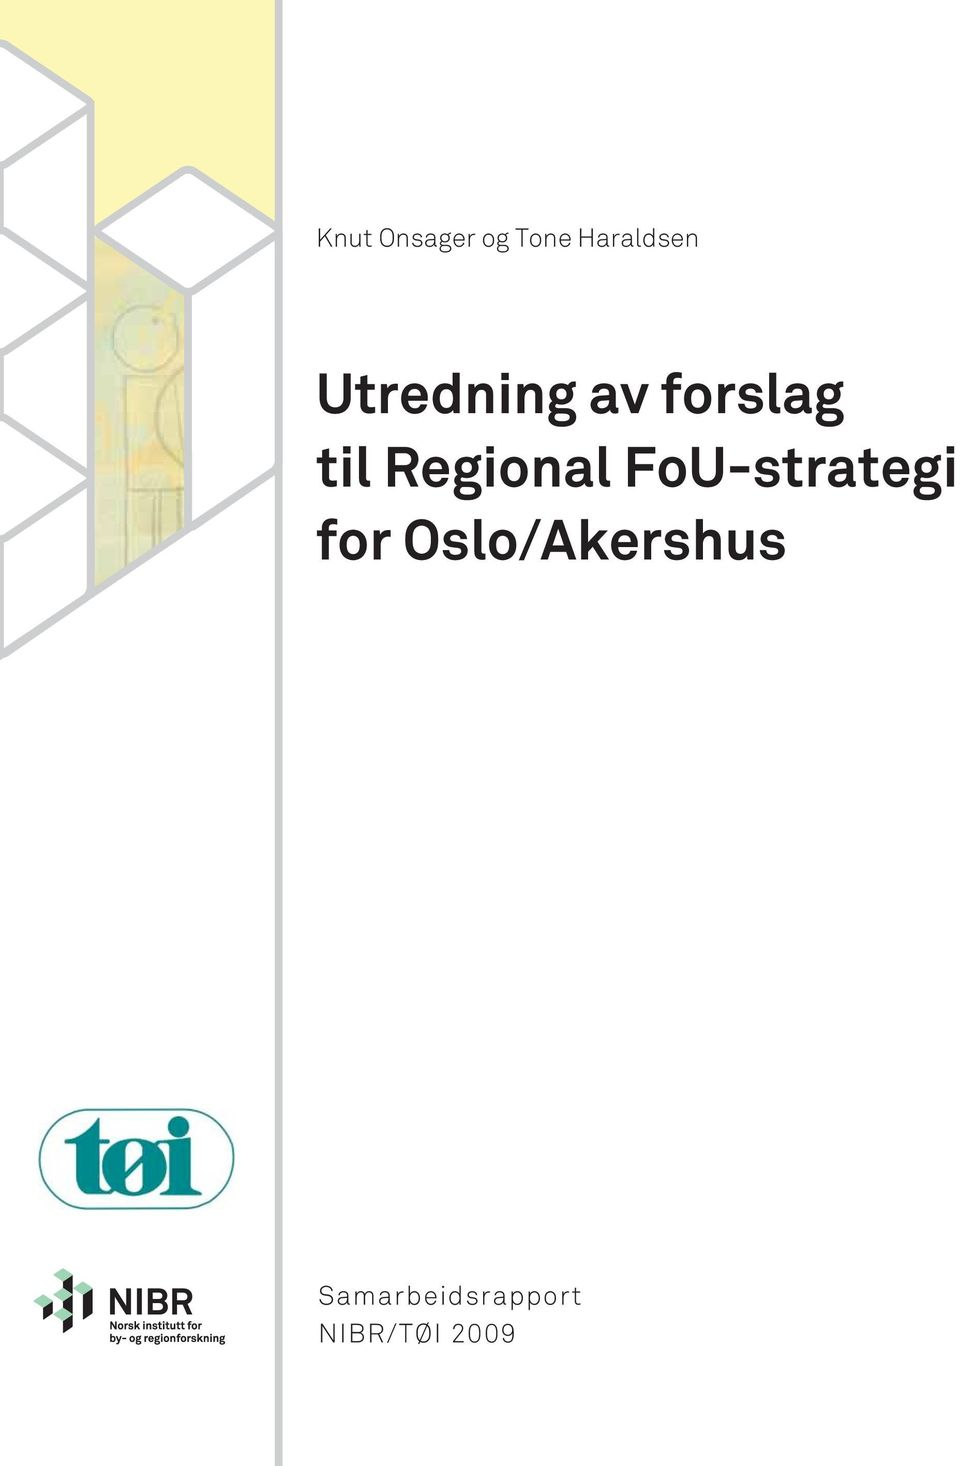 Regional FoU-strategi for